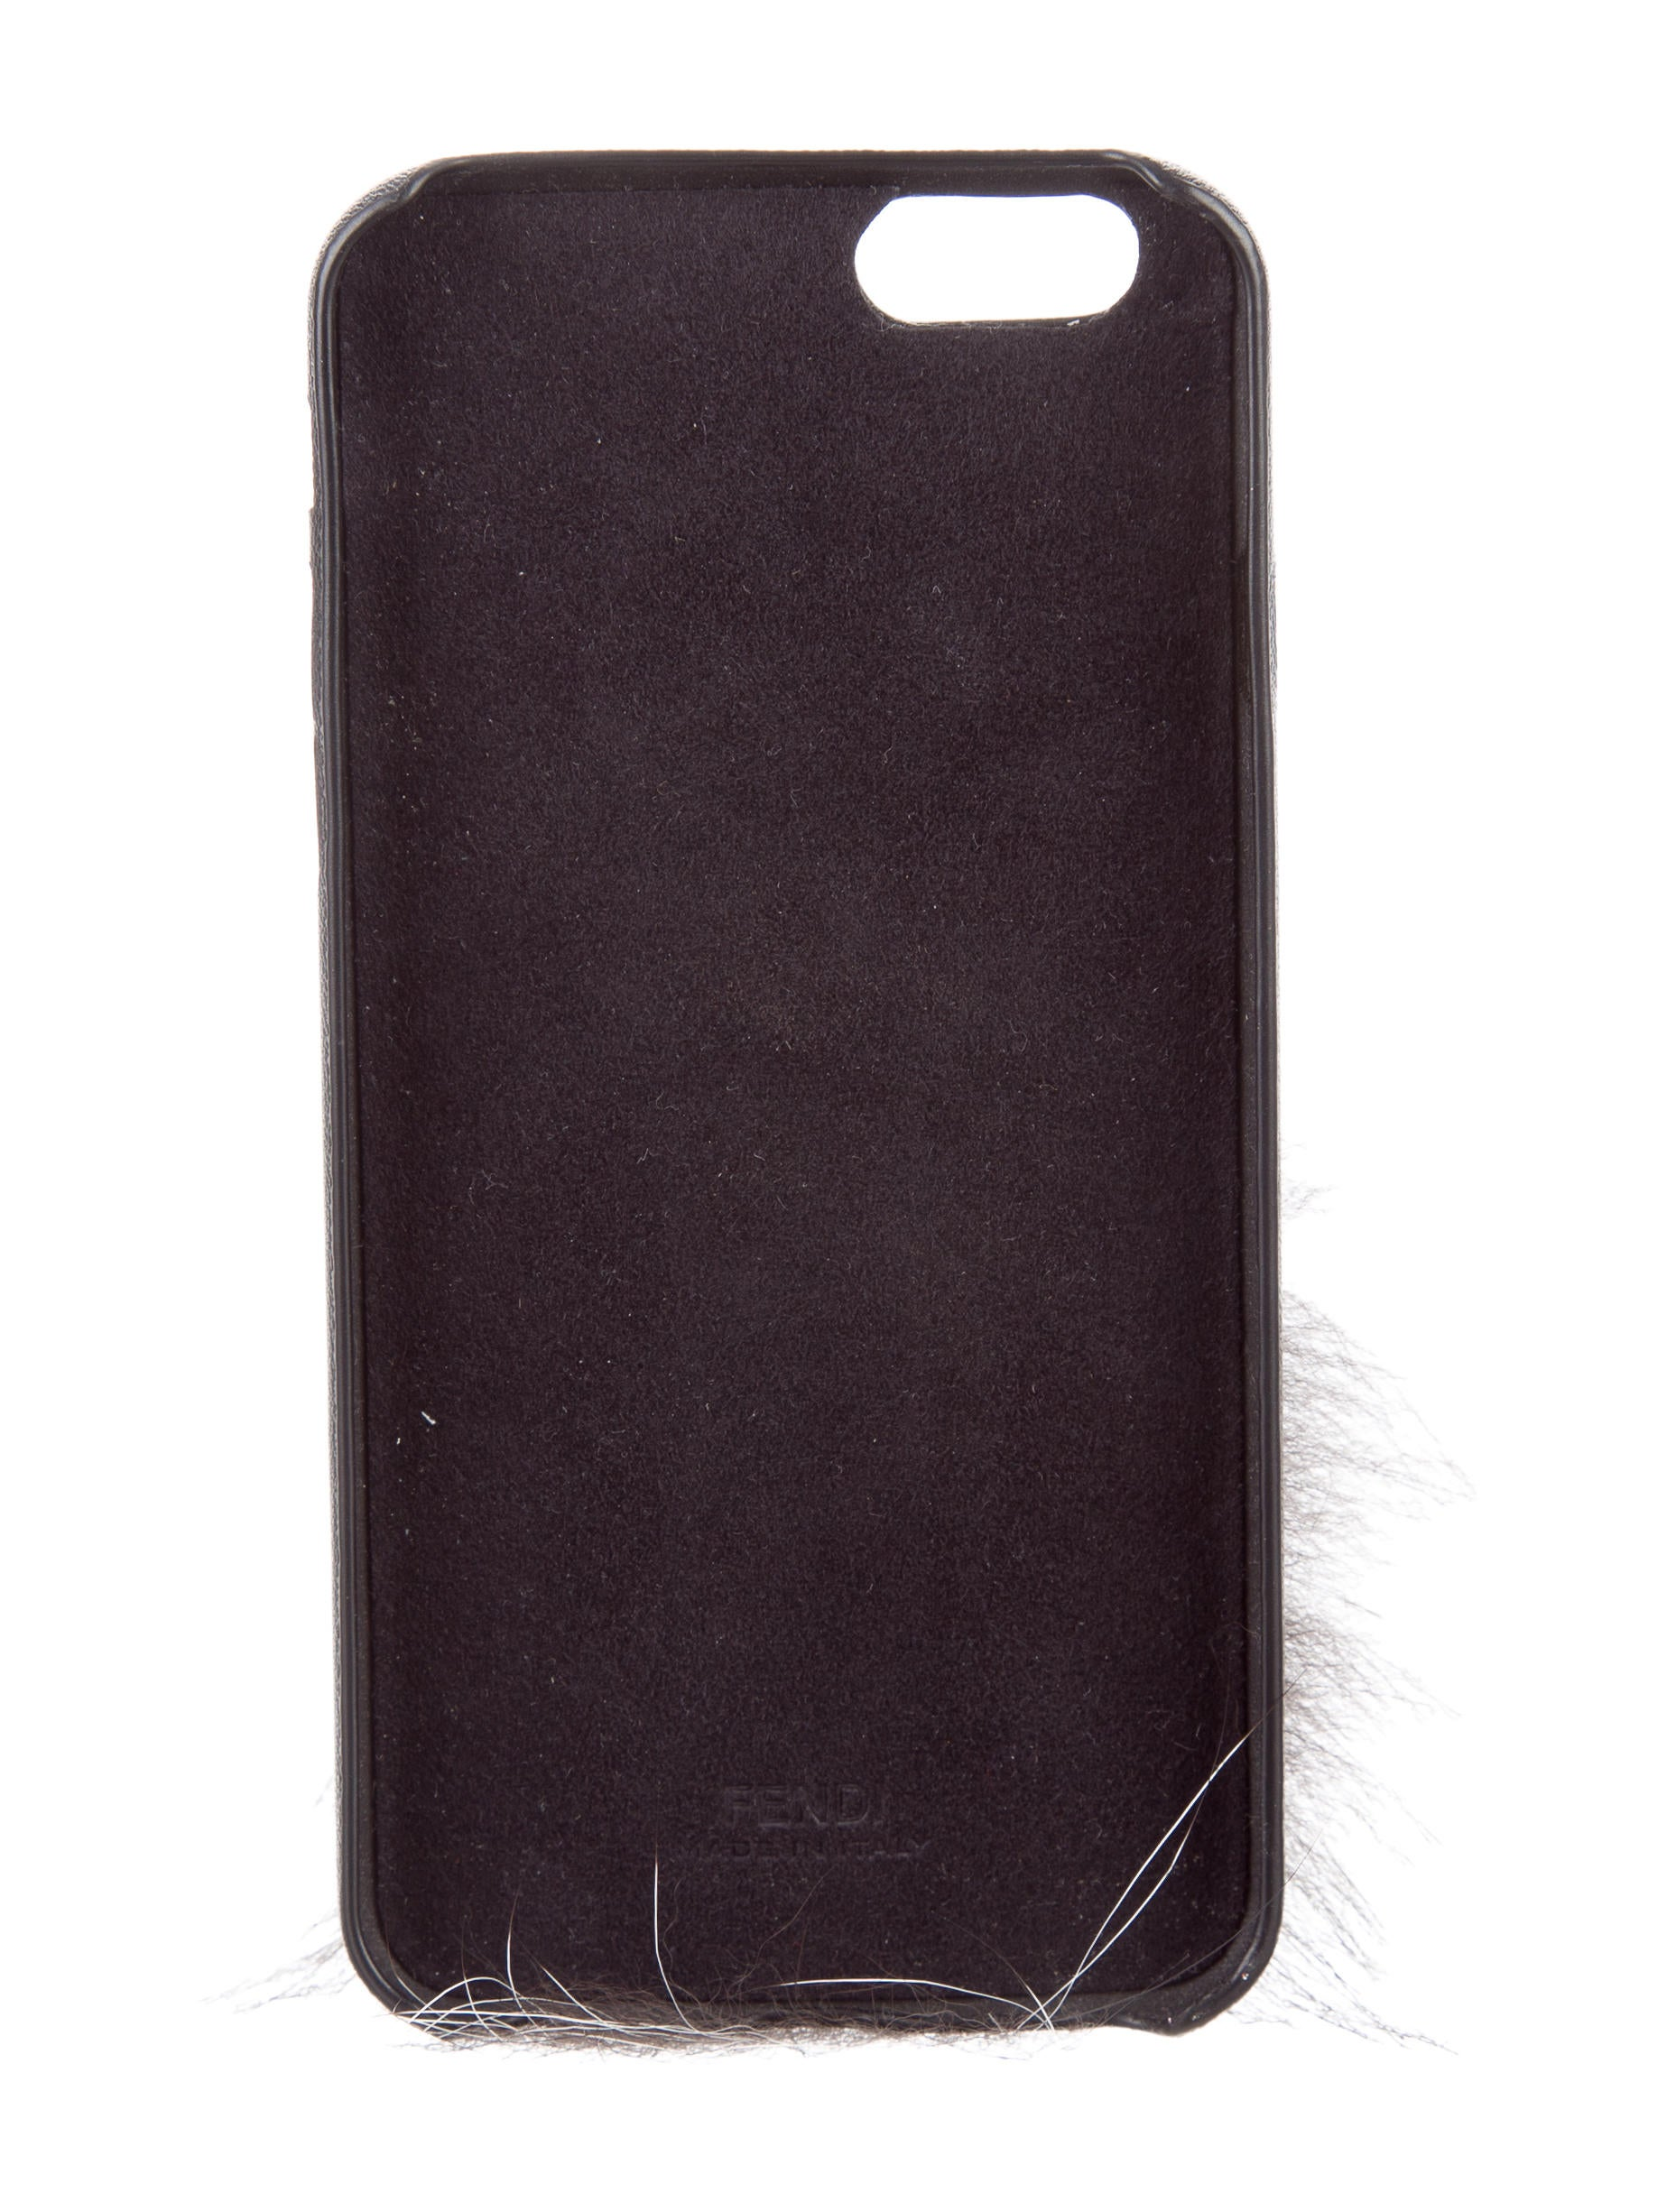 fendi iphone case fendi karlito iphone accessories fen62072 the 8155